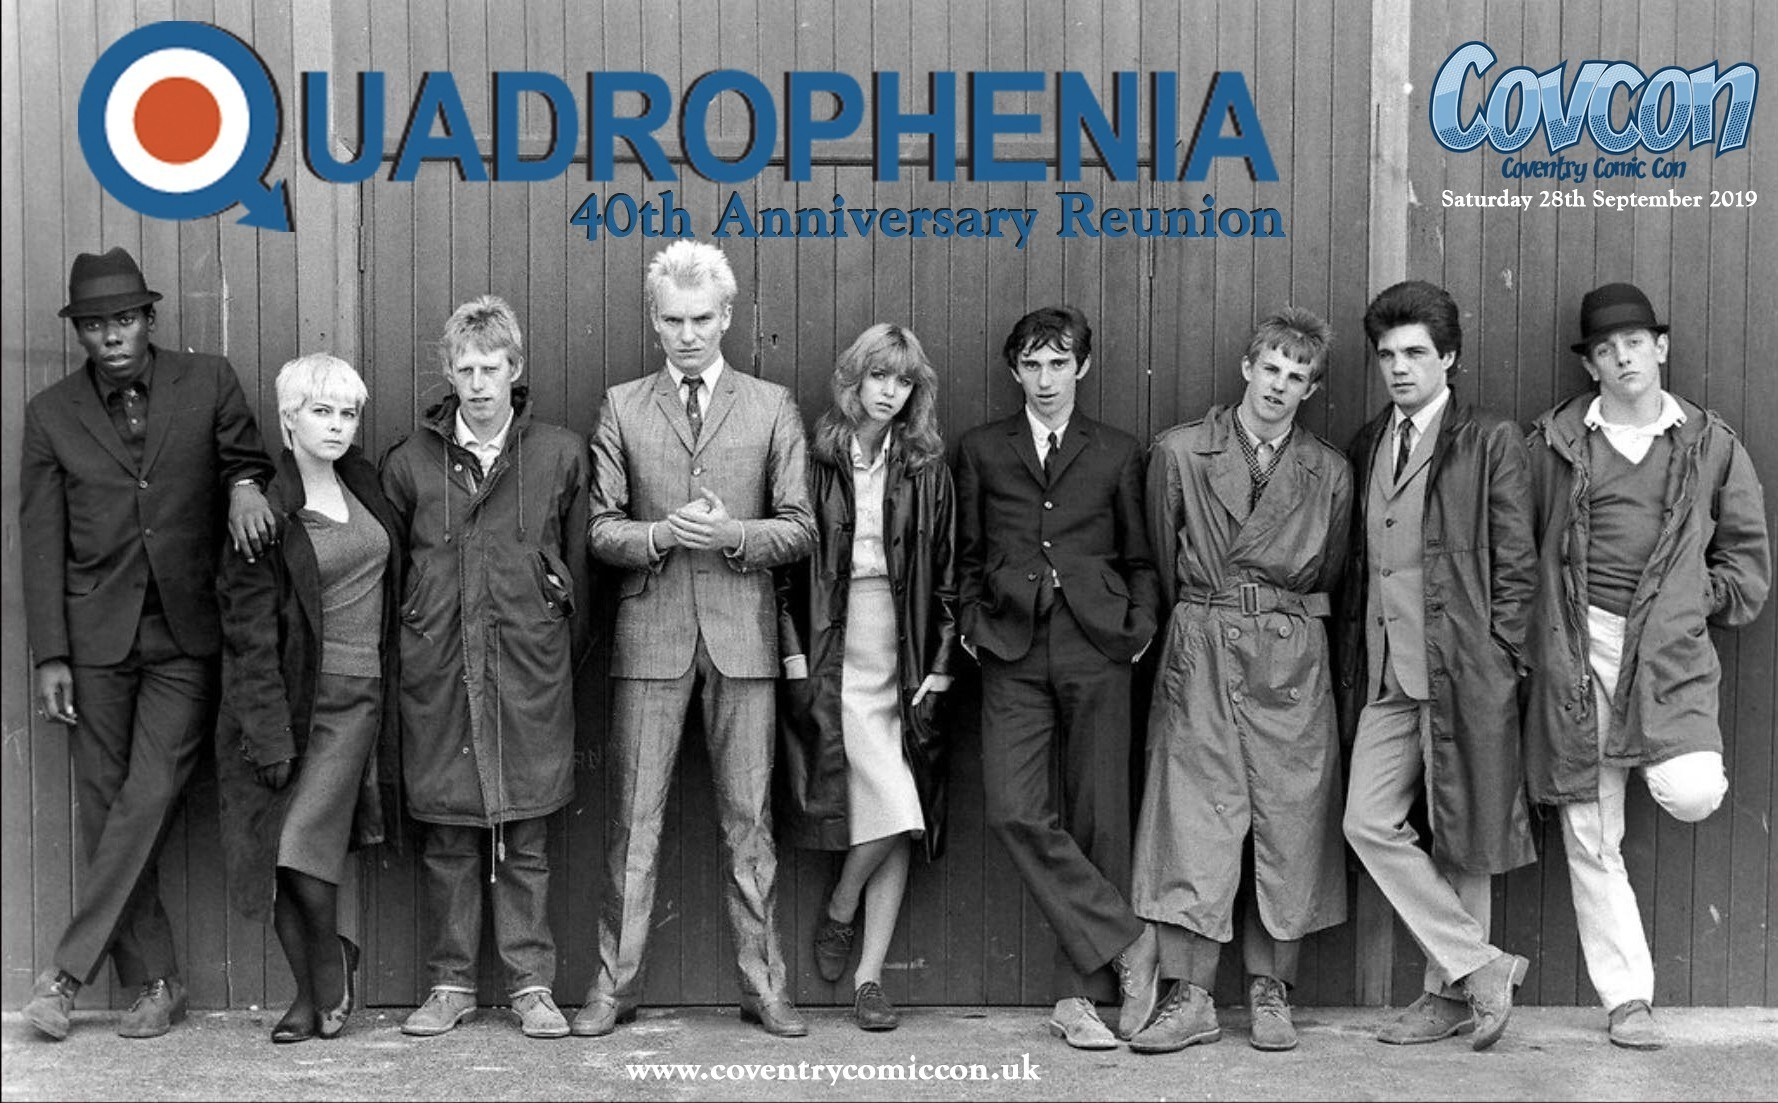 Covcon-Quadrophenia-no-names